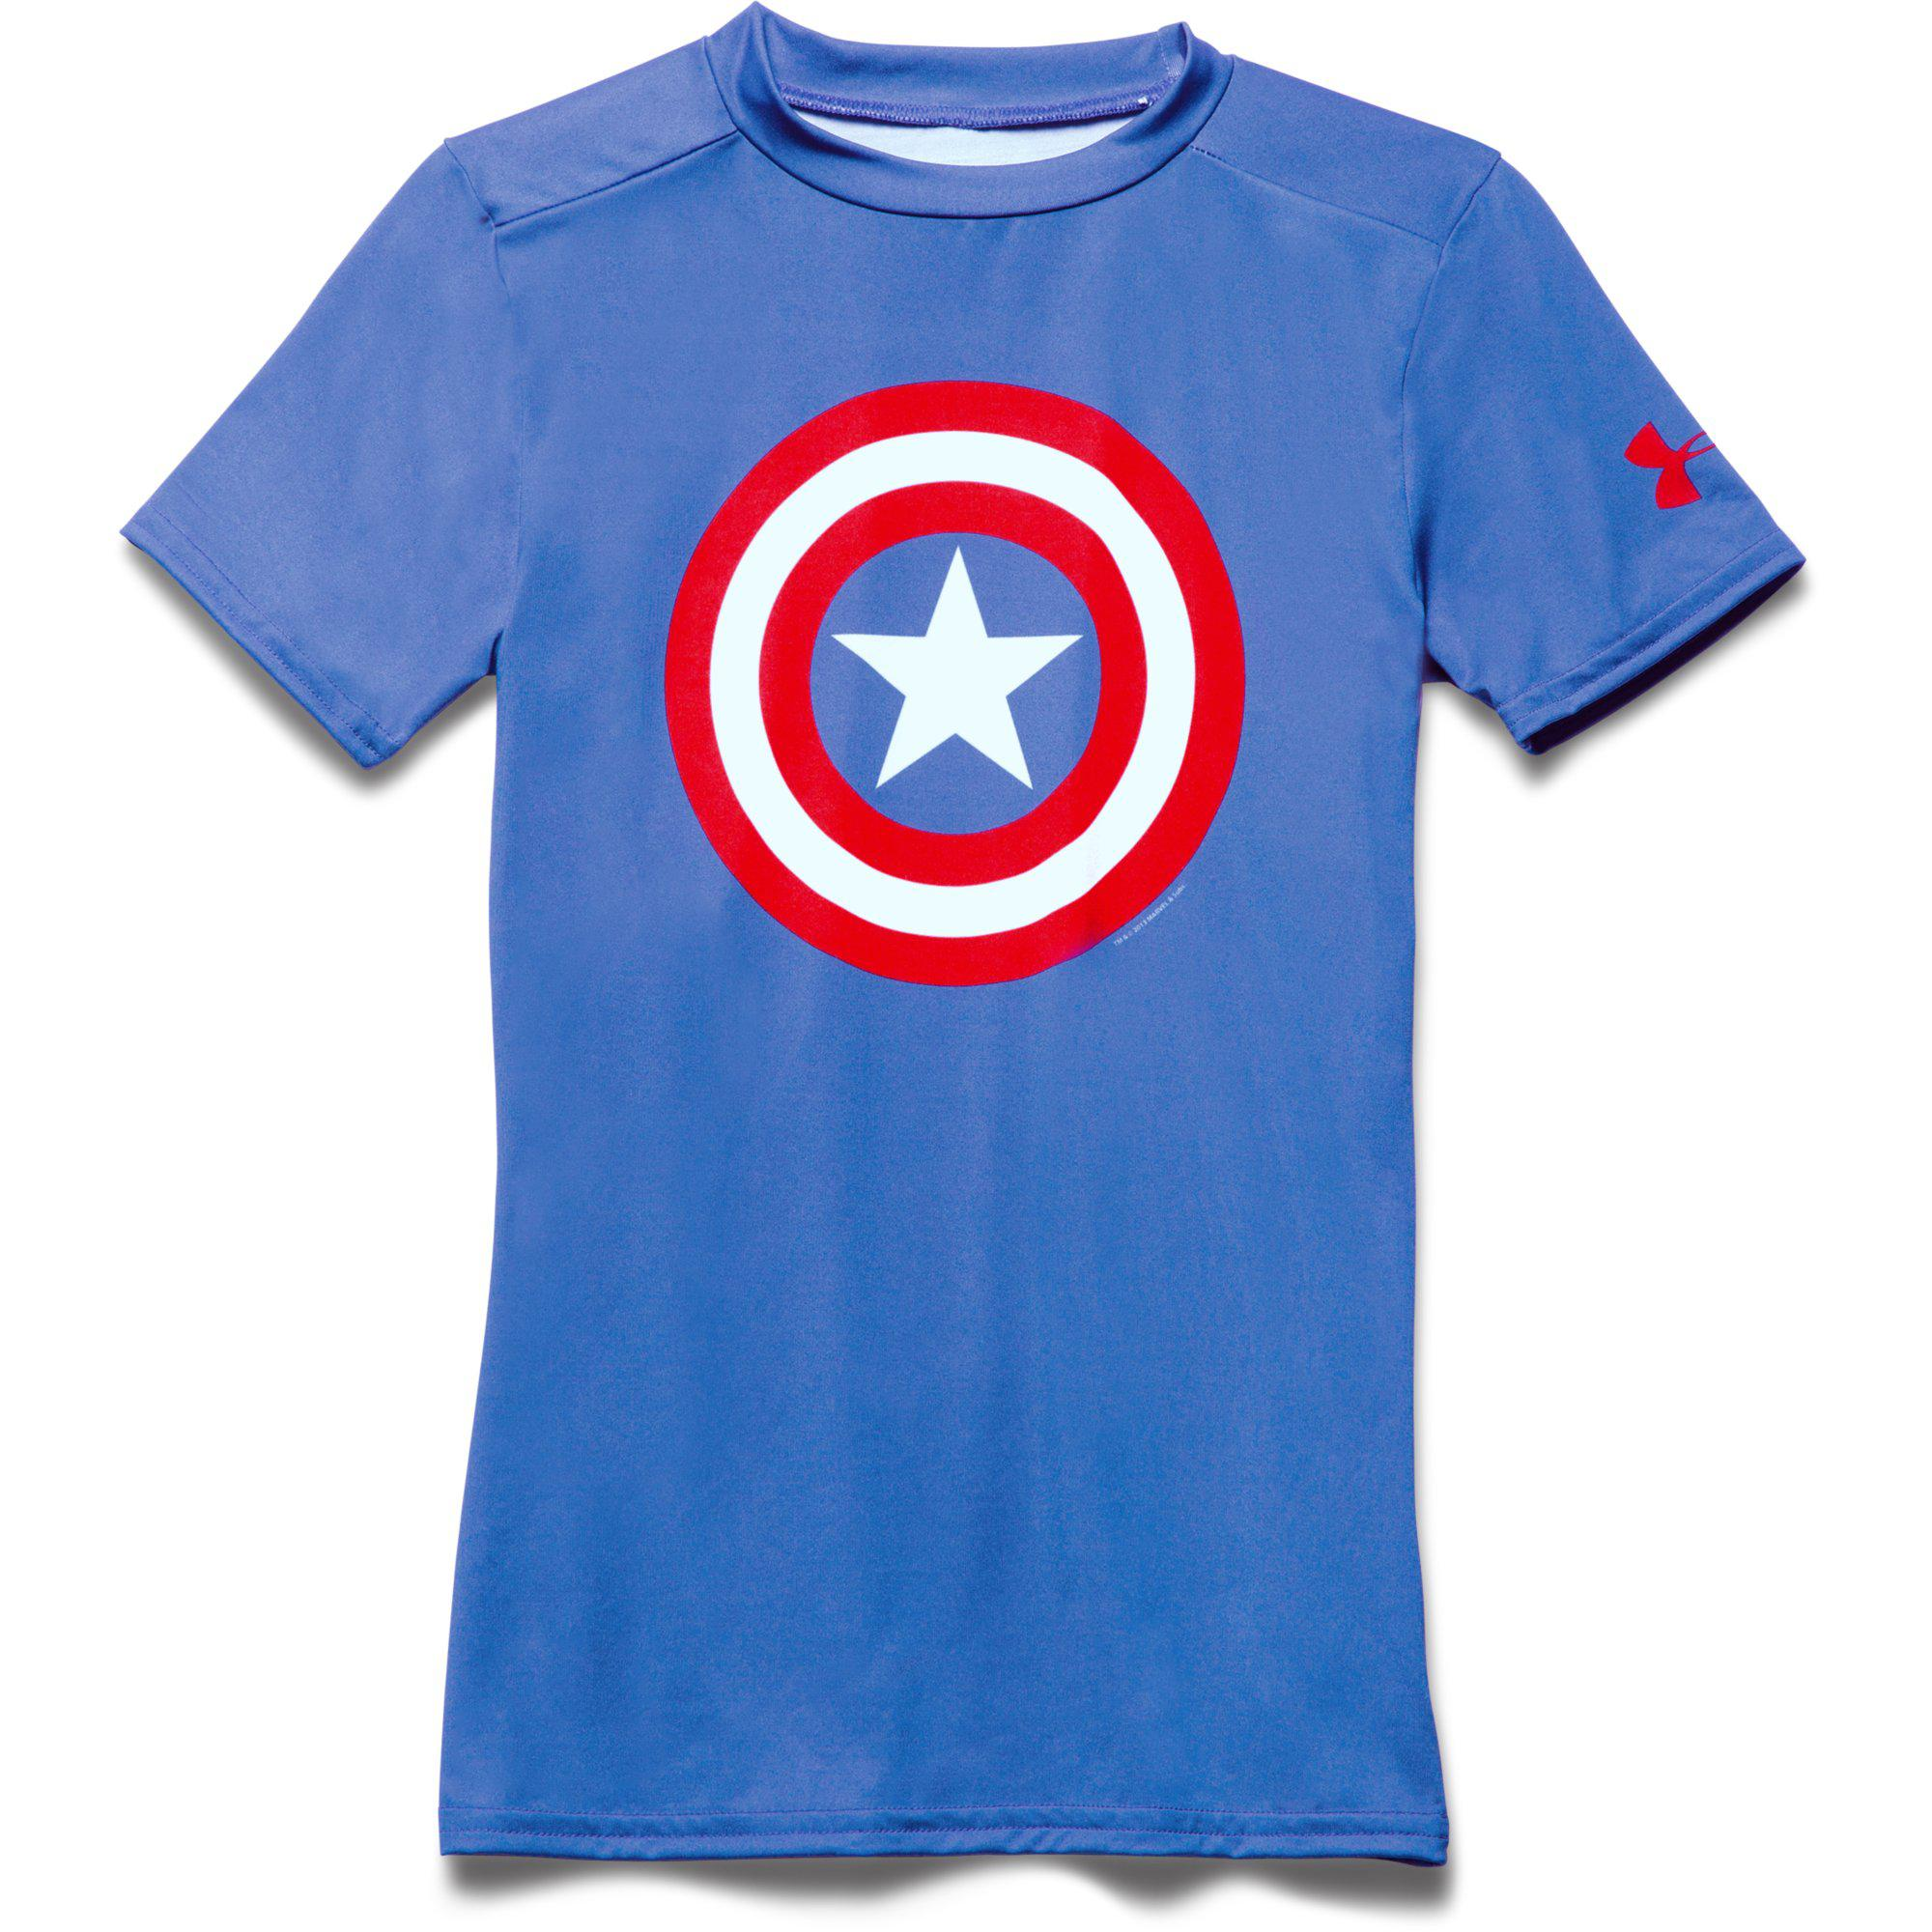 78eb538d0824 Under Armour Boys Captain America Fitted Top - Royal Blue/Red -  Tennisnuts.com